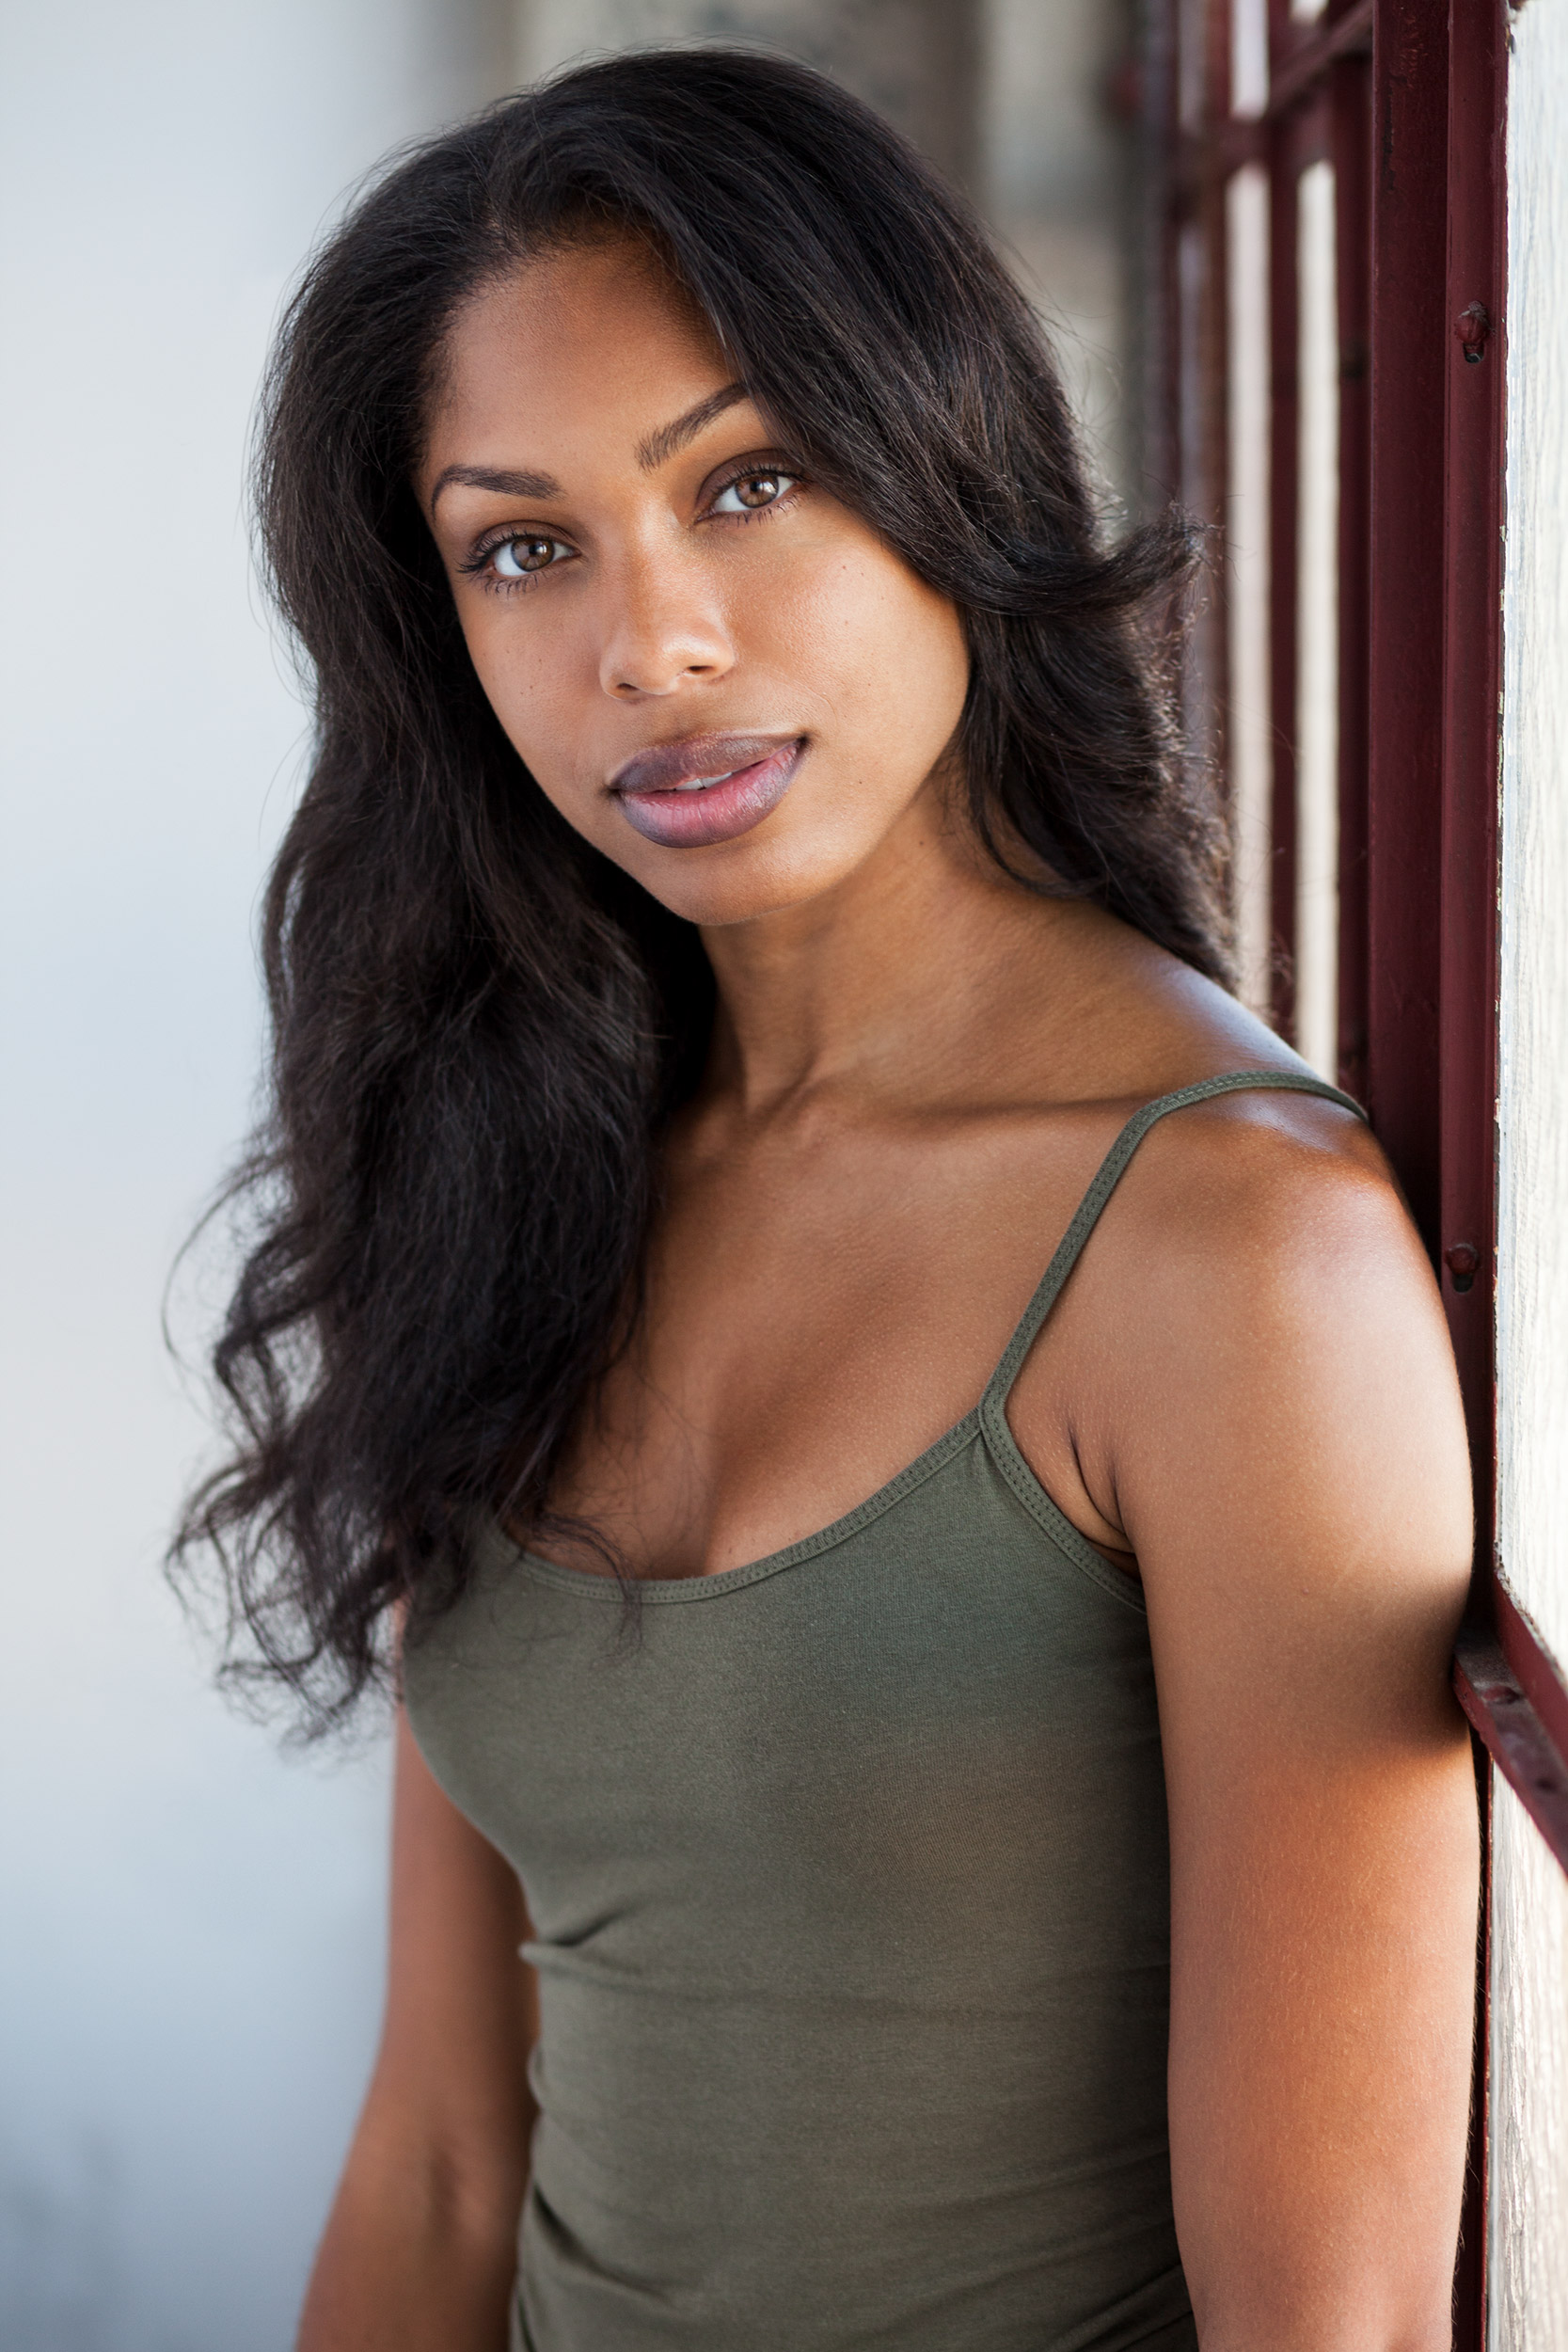 Nayriah_Teshali_model_actress_headshot.jpg